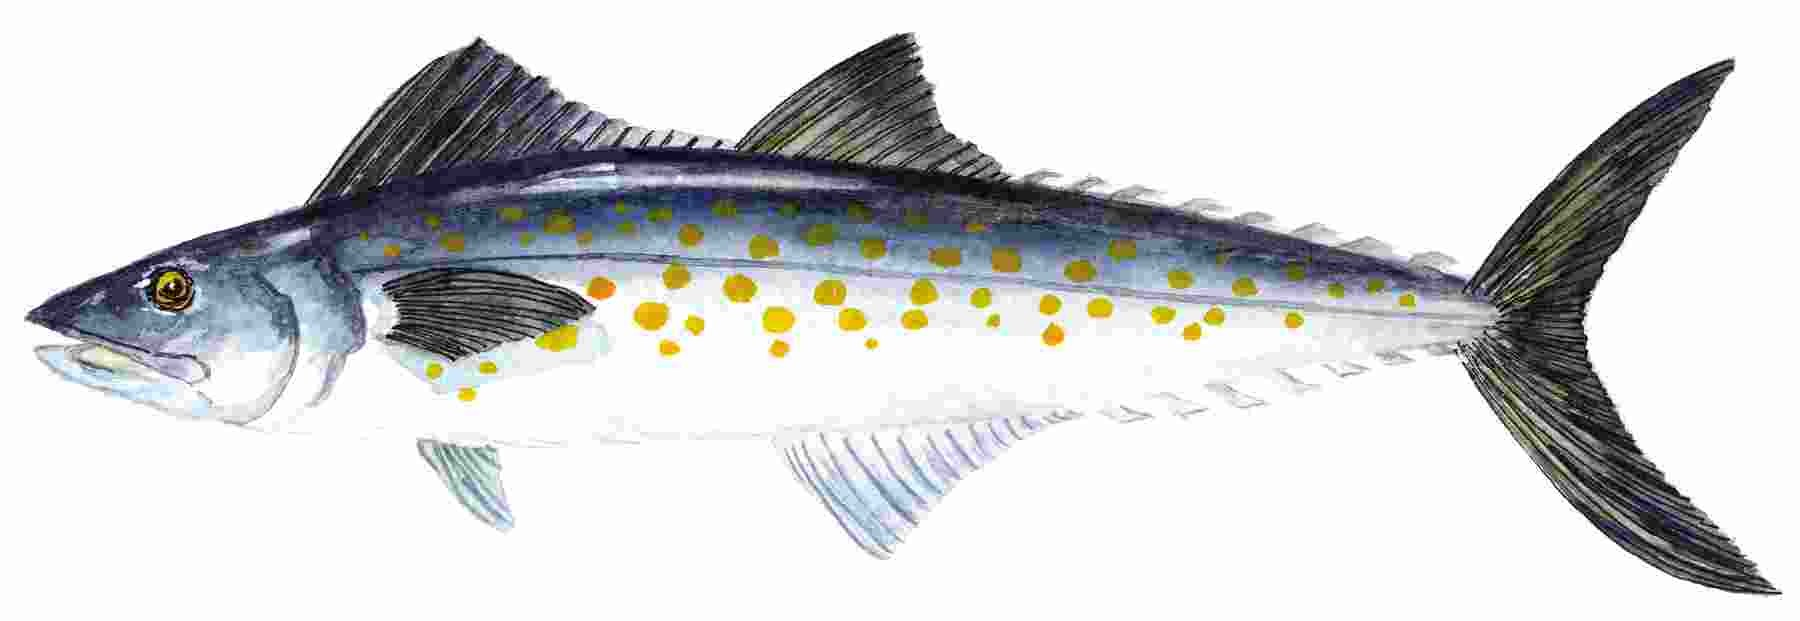 SPANISH_MACKEREL